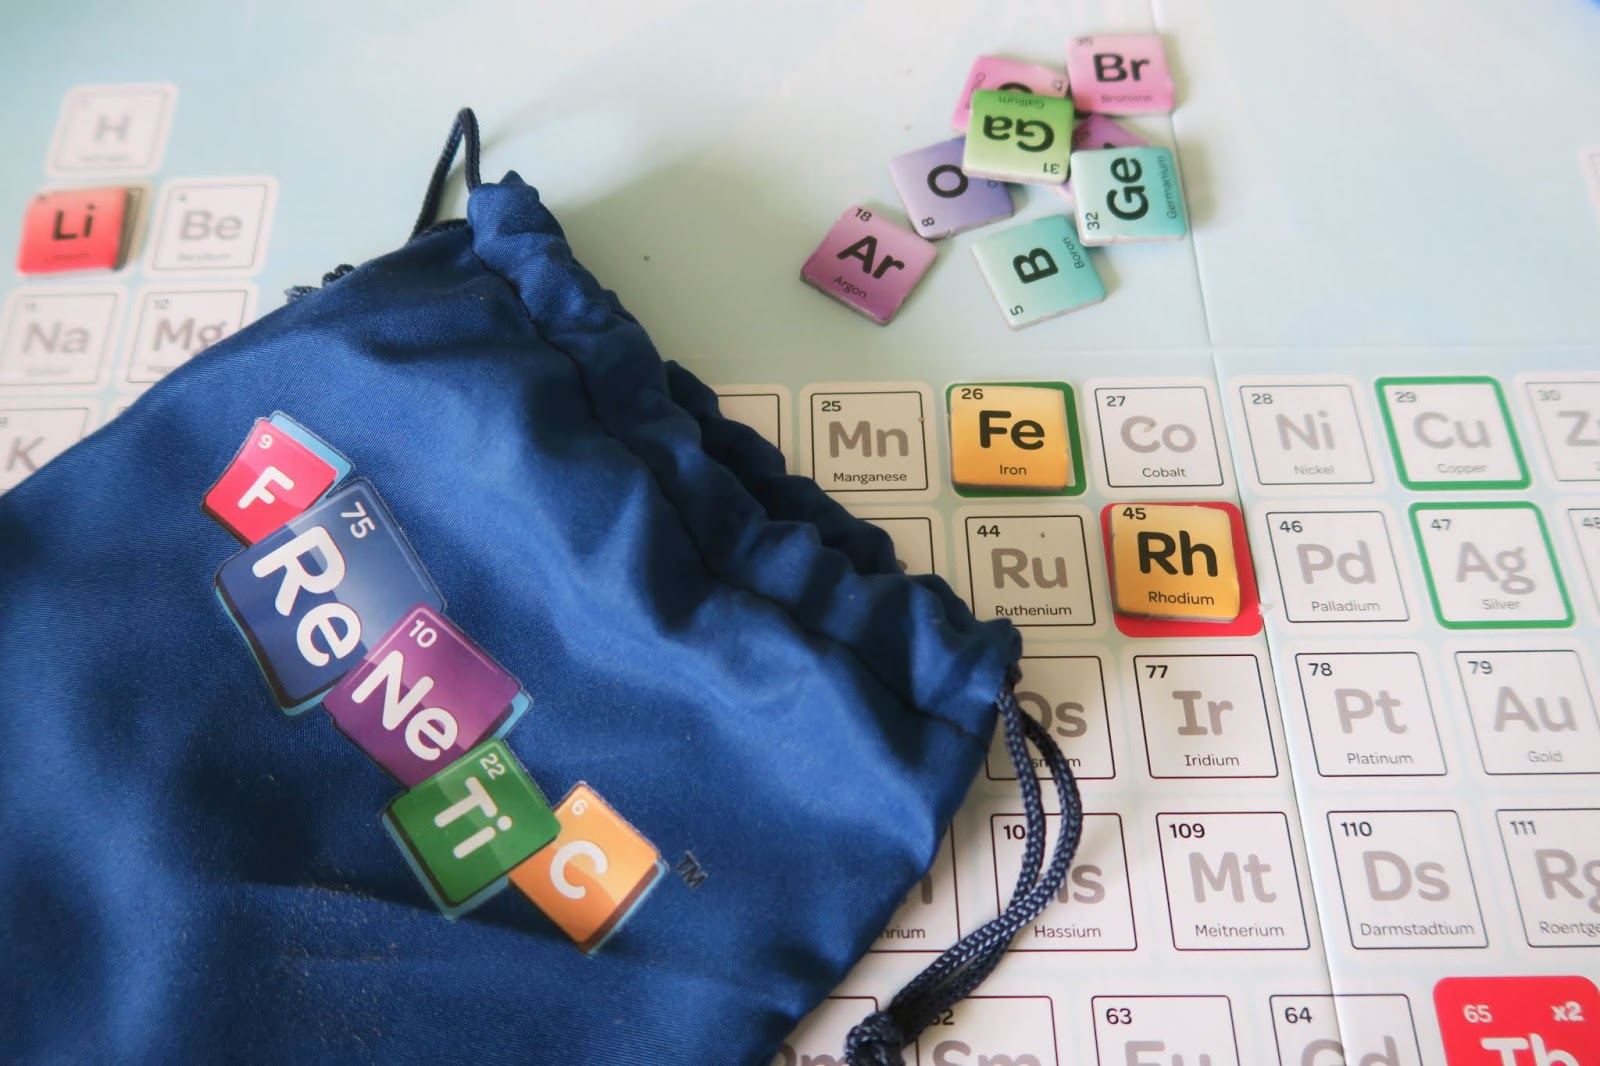 A close up of the Frenetic game. It shows the bag that the letters live in.